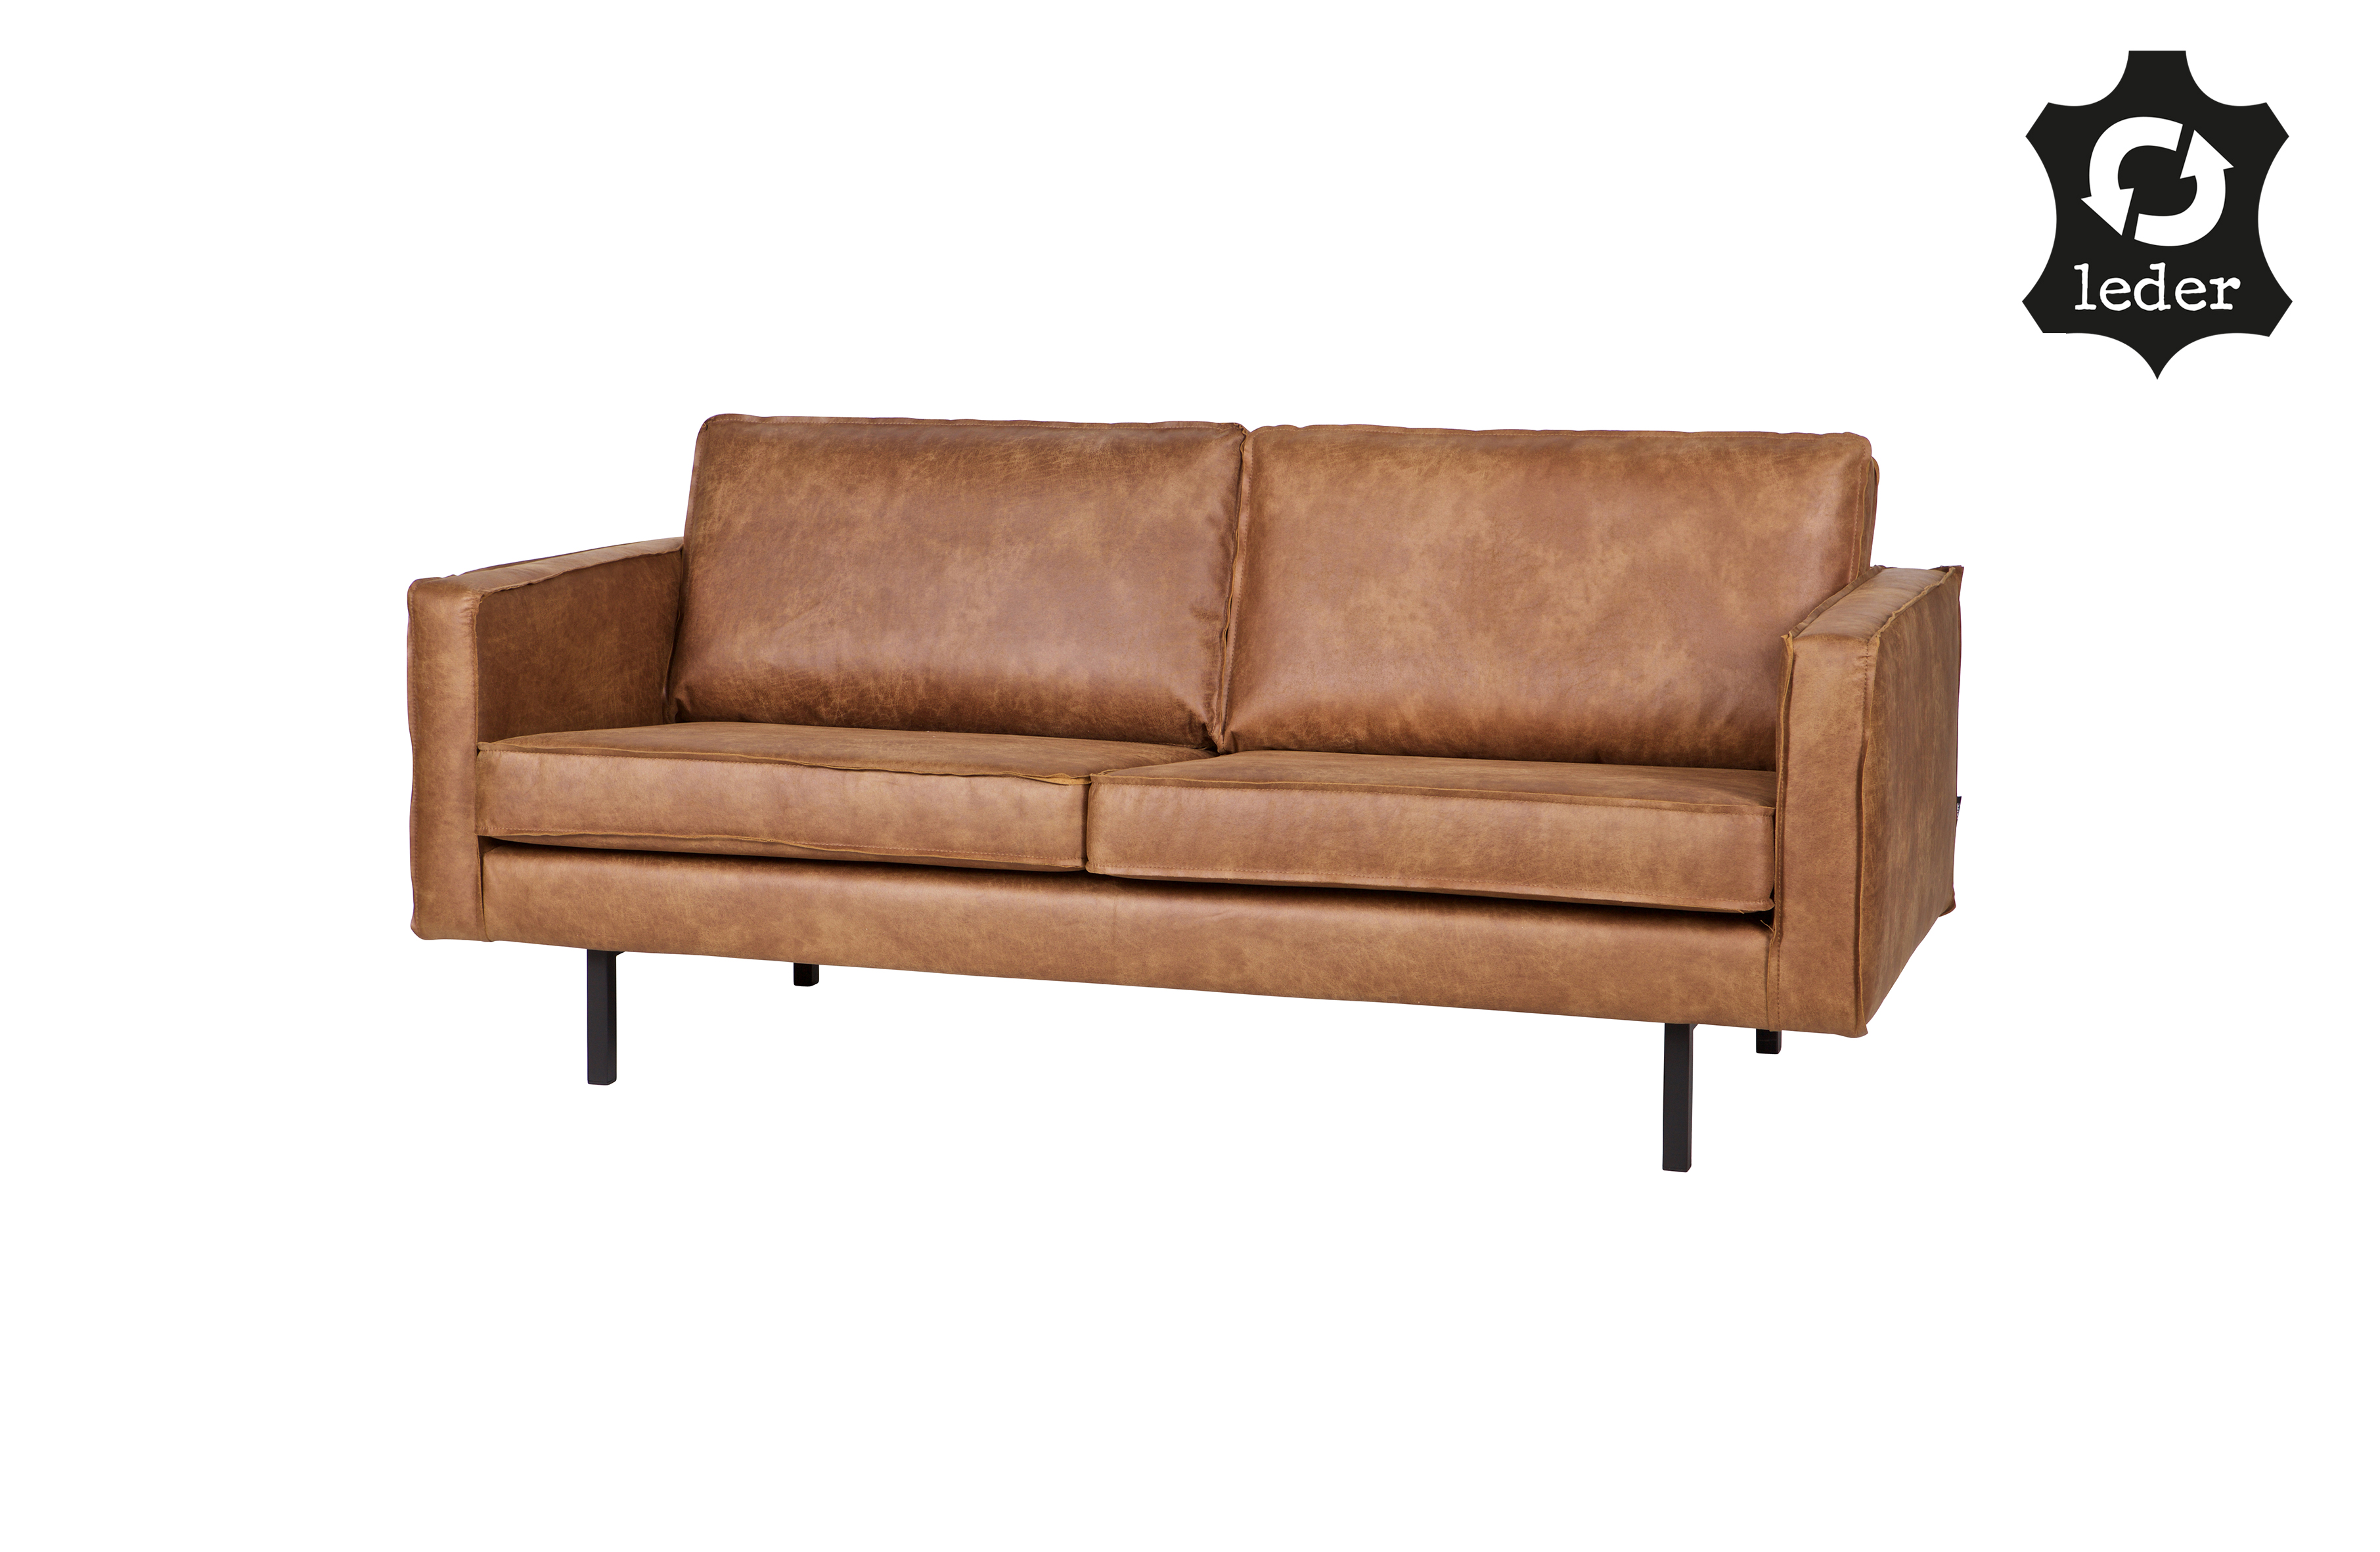 Slapen Op De Bank Be Pure Home Rodeo Bank 2 5 Zits Velvet Cognac